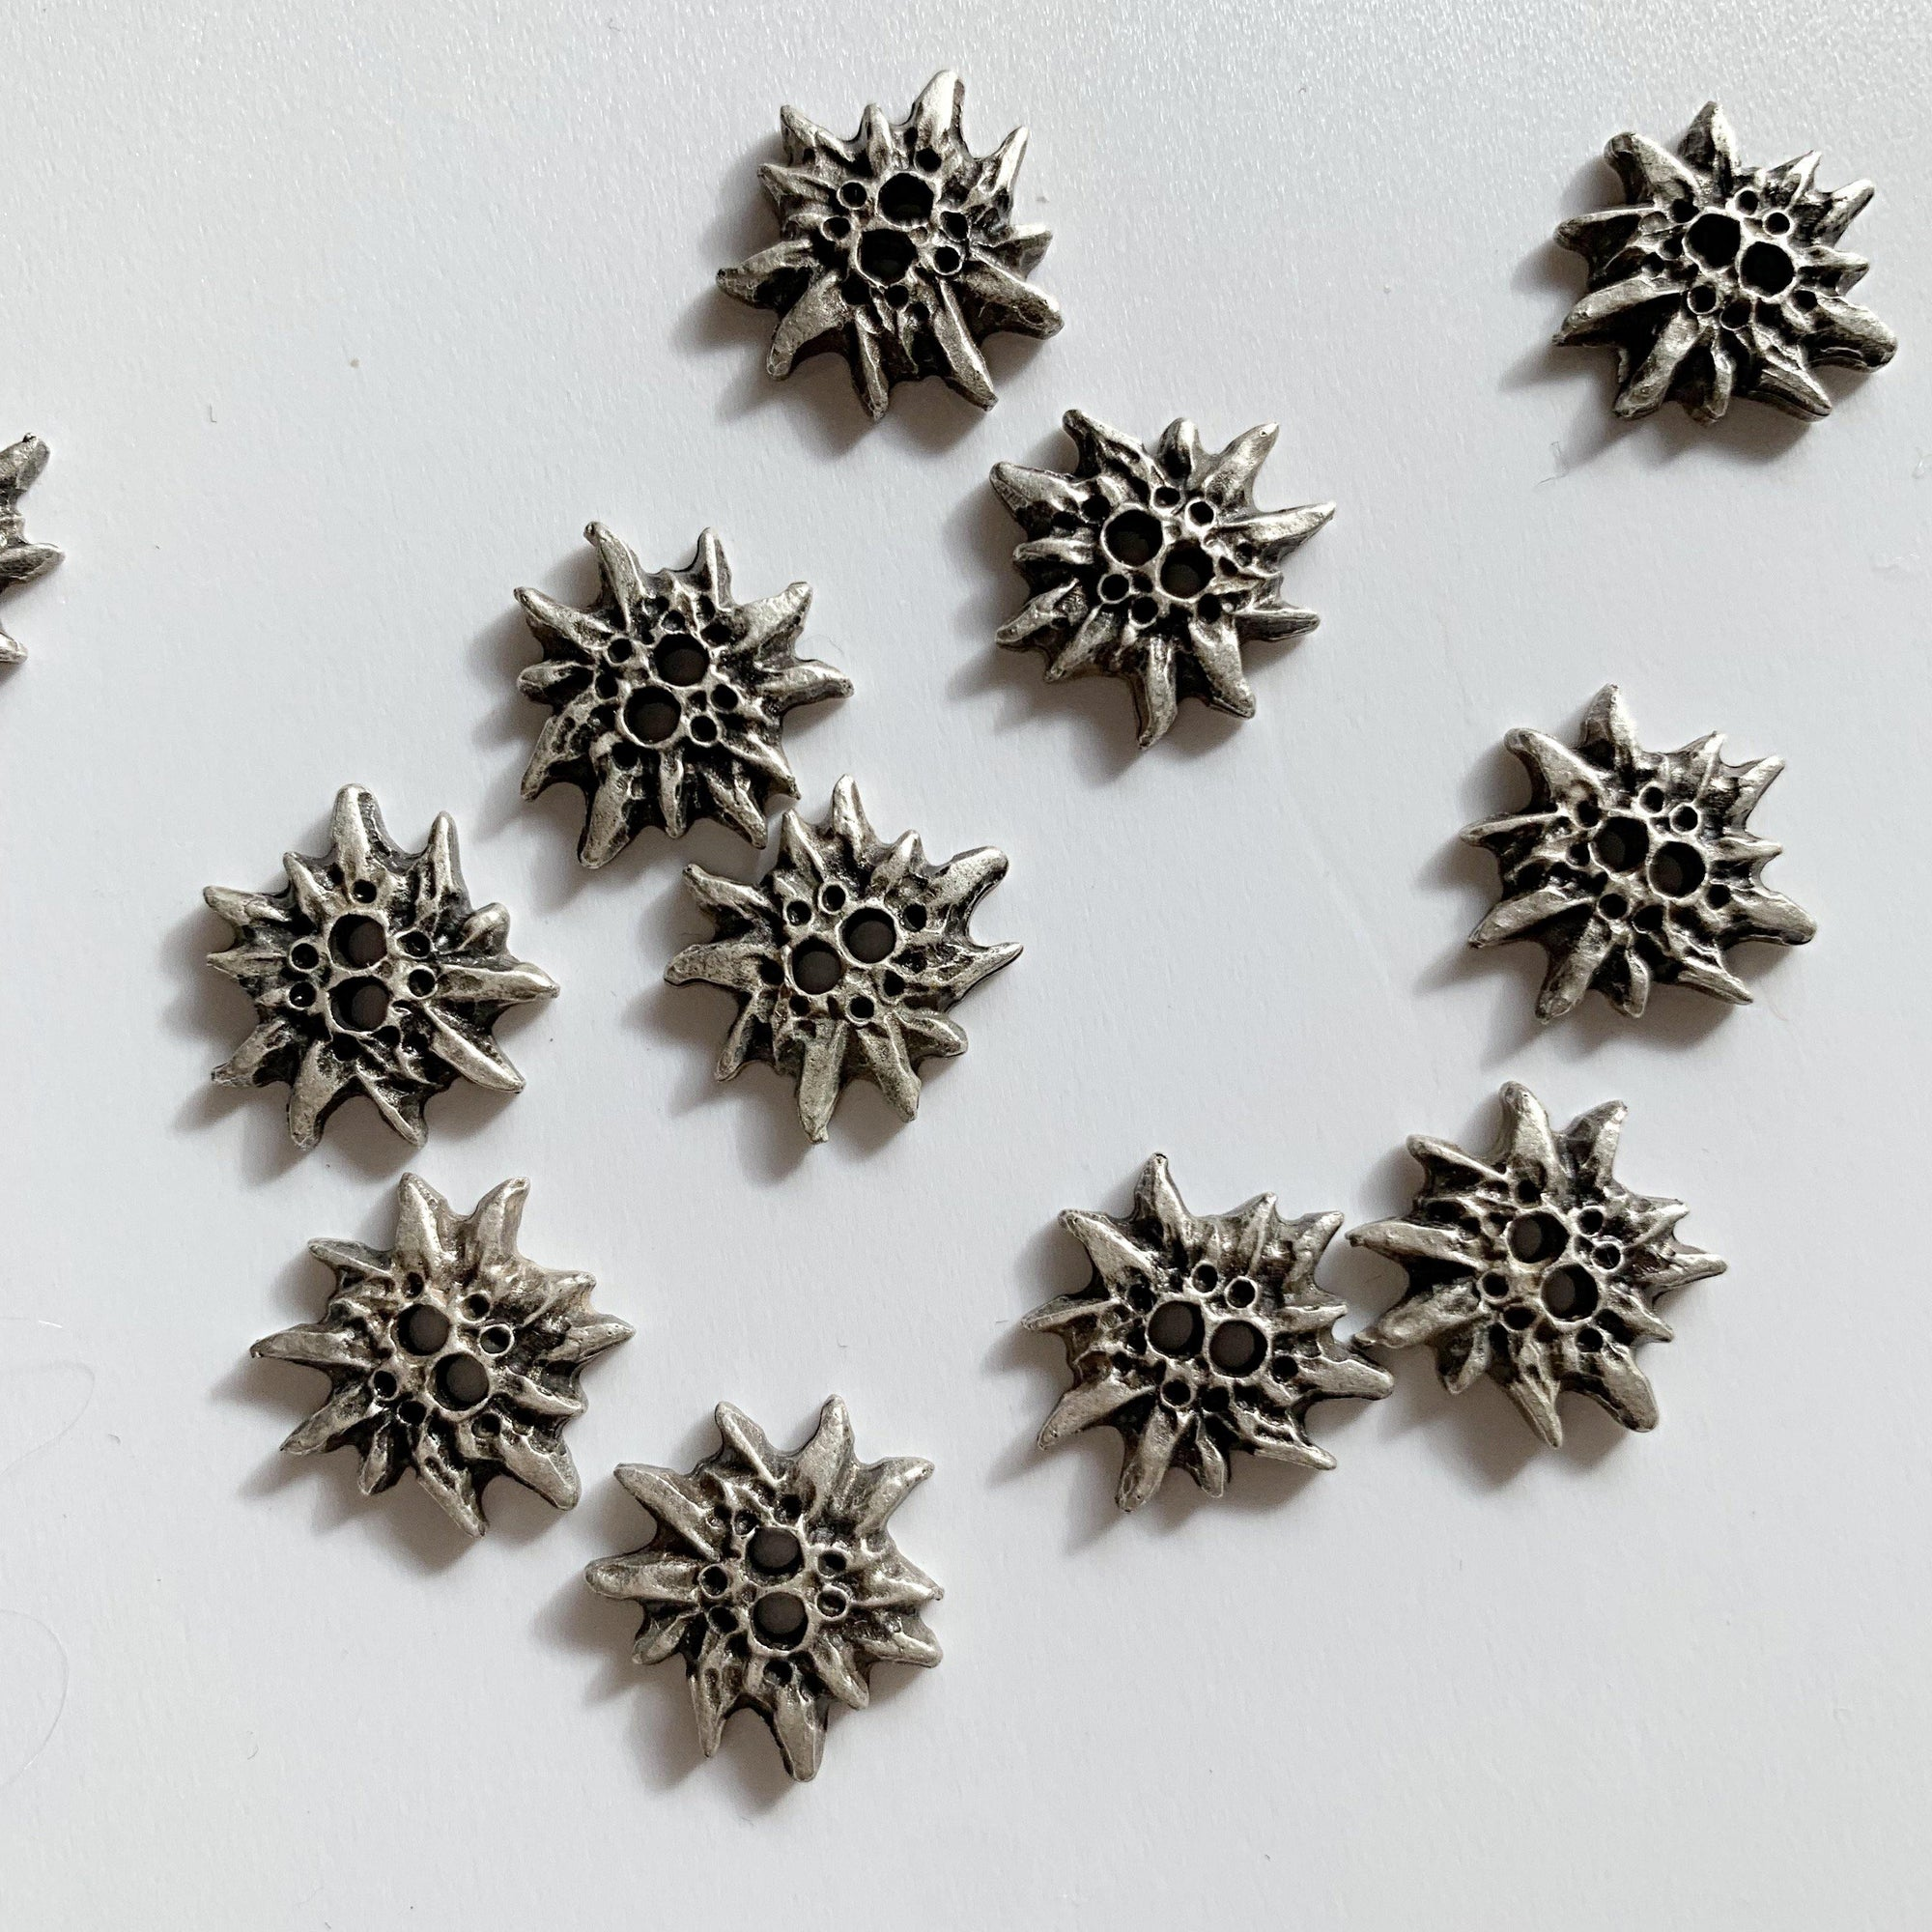 15mm - Metal Spiky Star TextileGarden Buttons & Fasteners